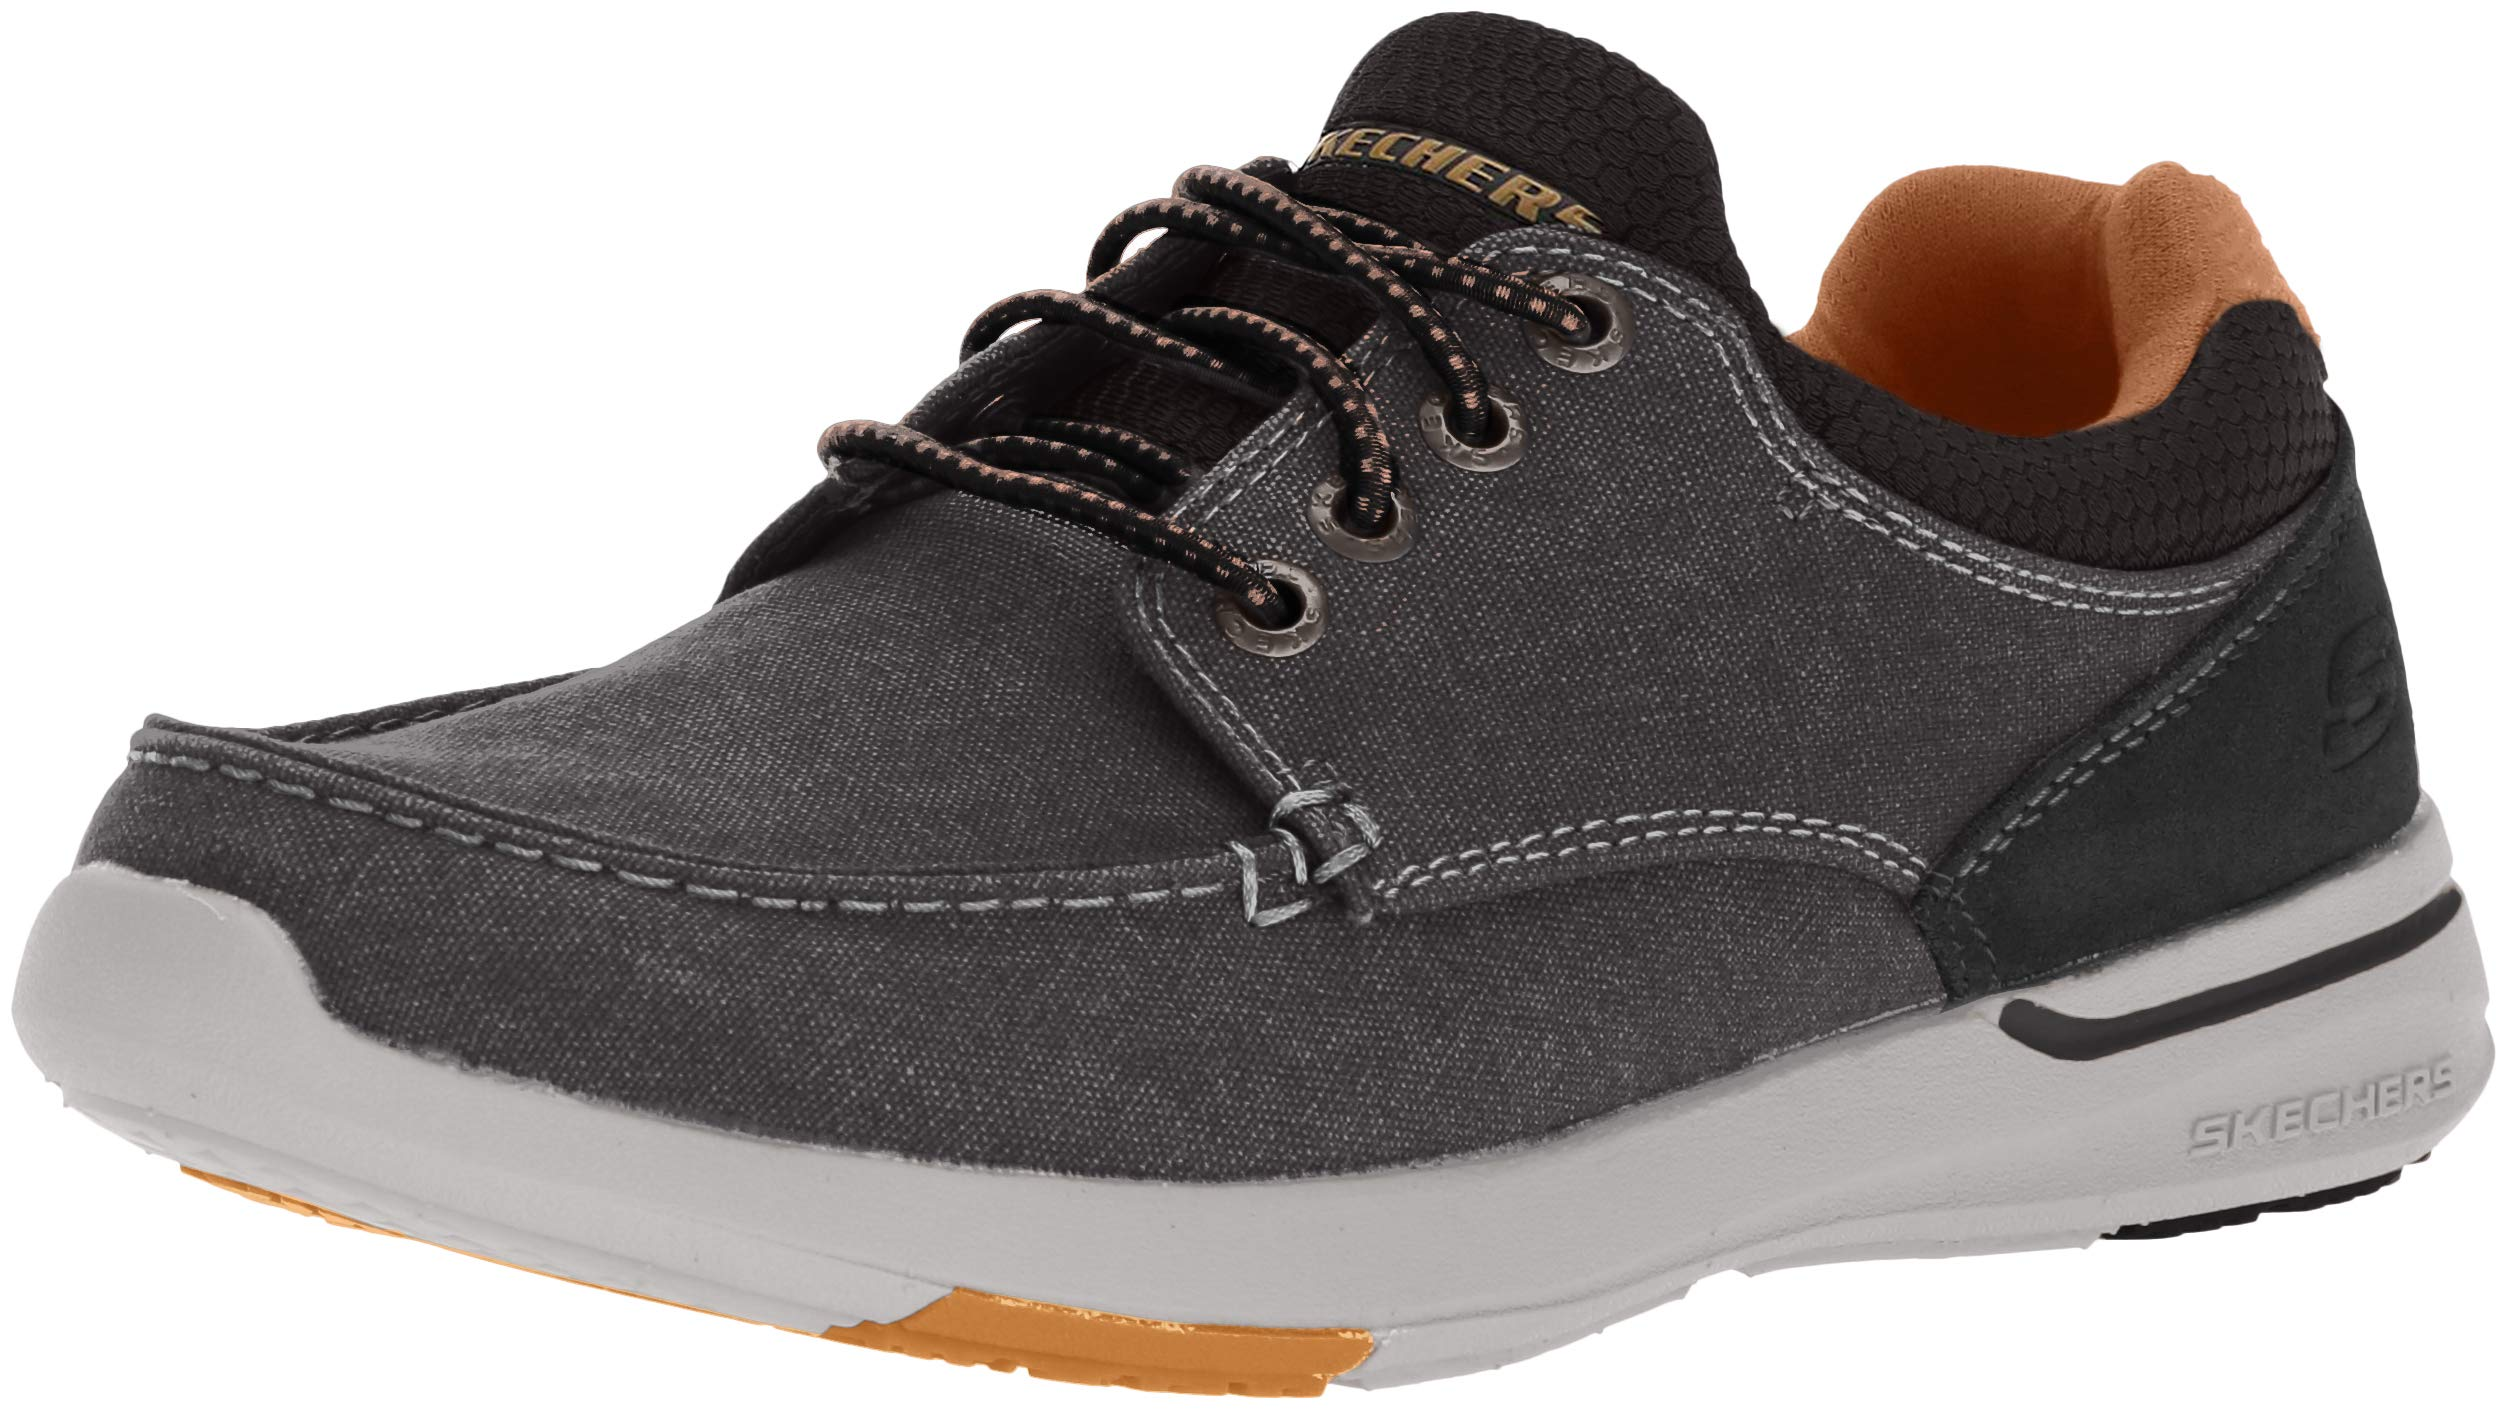 Skechers Mens Relaxed Fit Elent Mosen black